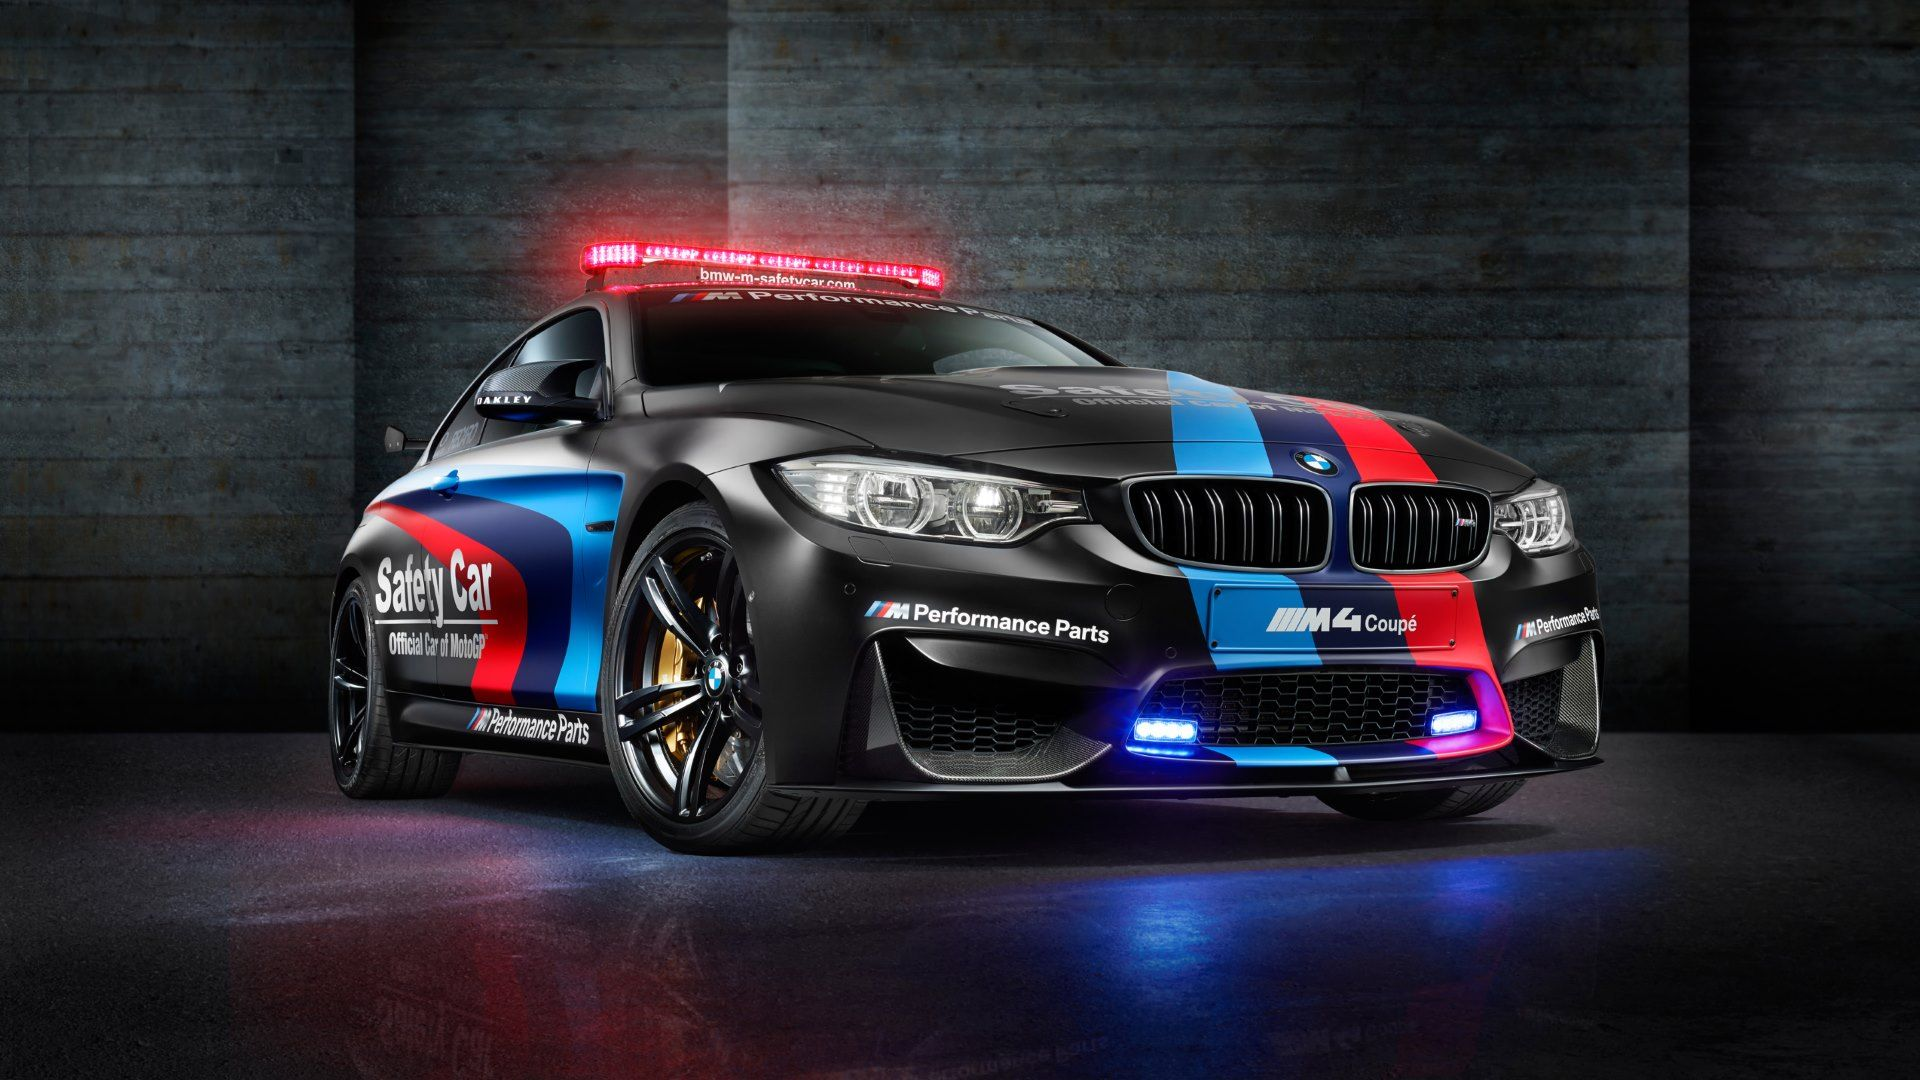 Bmw 5 series touring police 2013 uk wallpapers and hd images car - Bmw M Official Car Of Motogp Hd Wallpapers 4k Wallpapers